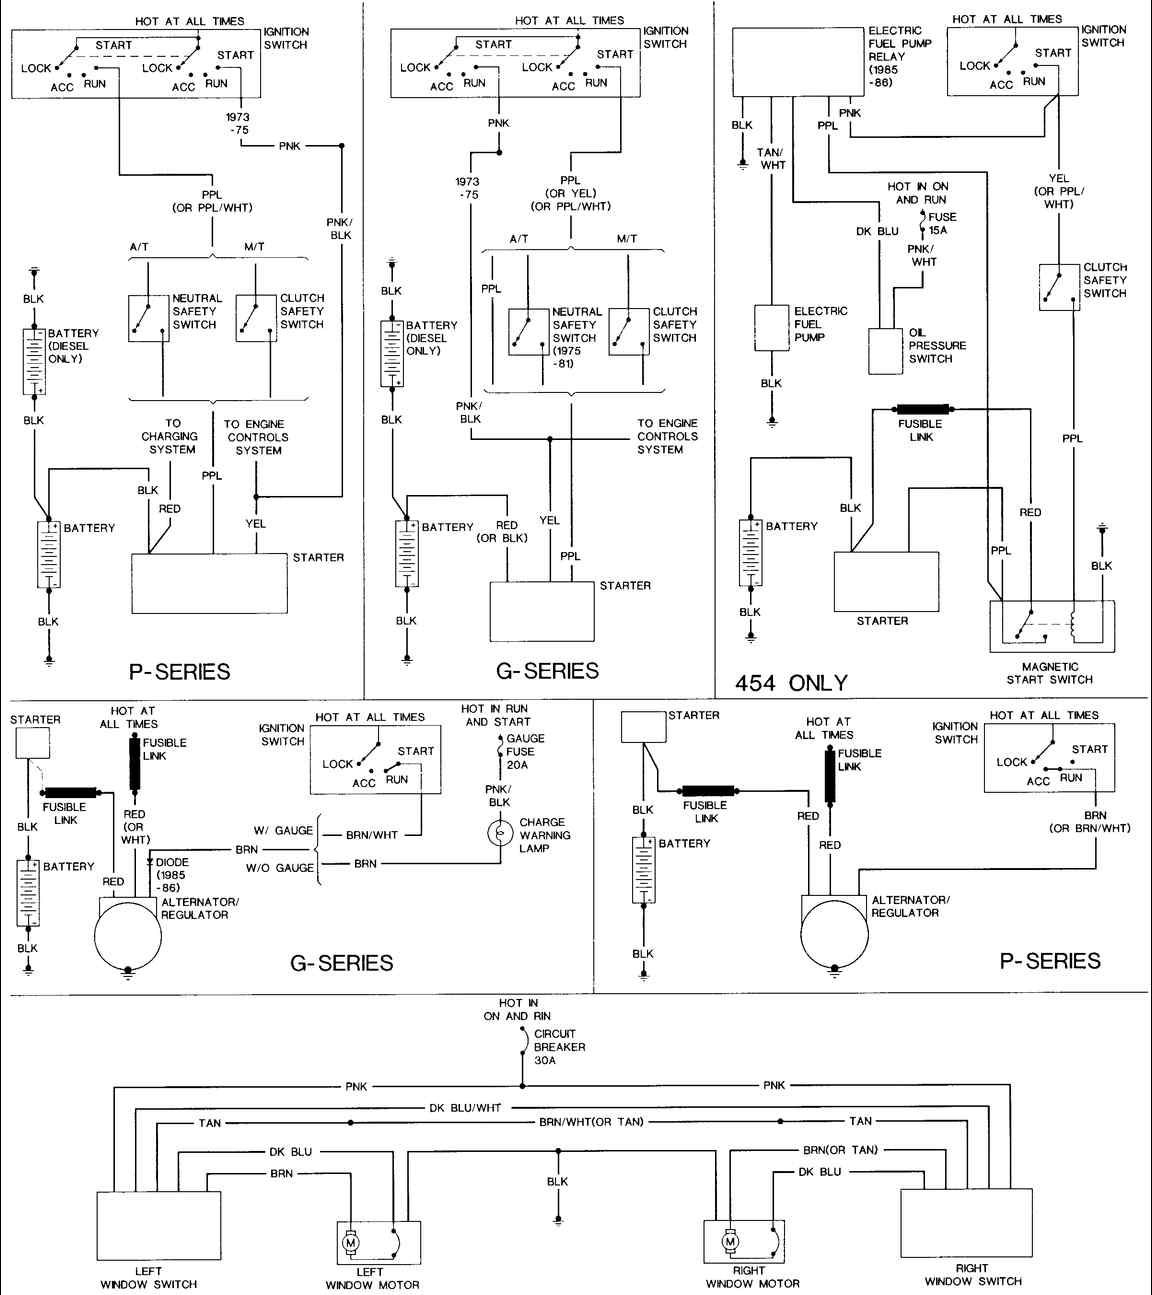 0c73623a181dc376dbb4777e2029d285 85 chevy truck wiring diagram 85 chevy van the steering column chevy starter wiring diagram at mifinder.co